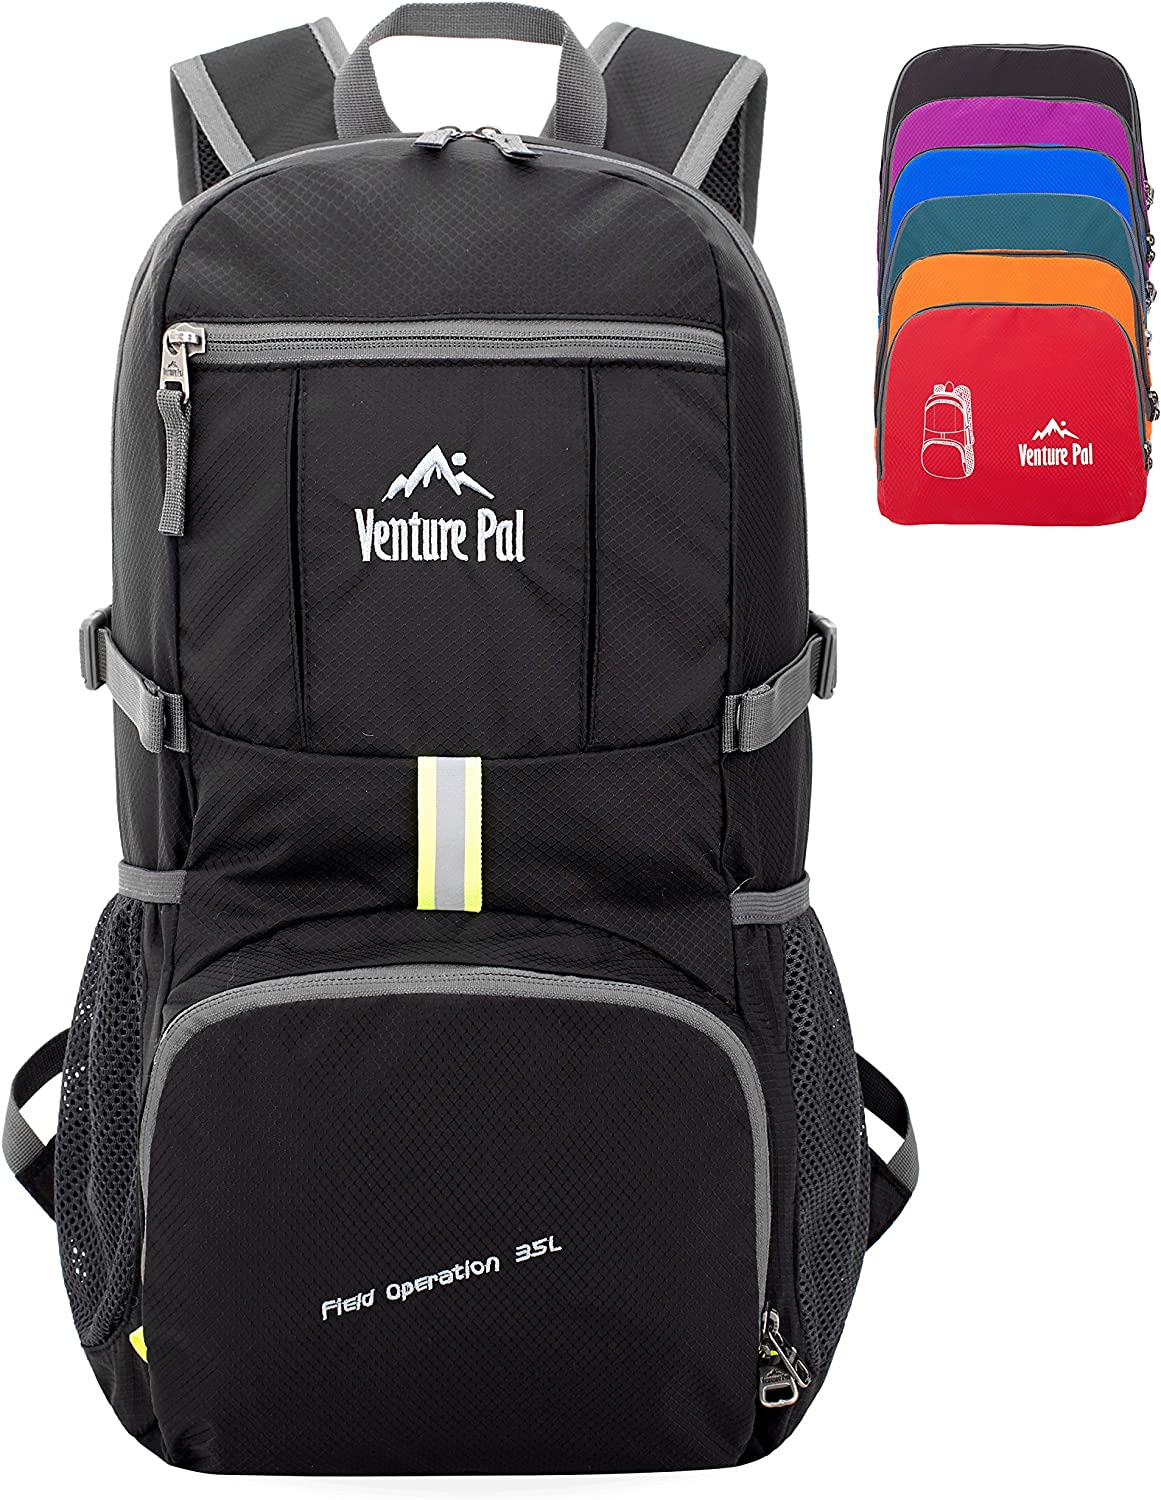 Venture Pal 35L Travel Backpack – Packable Durable Lightweight Hiking Backpack Daypack